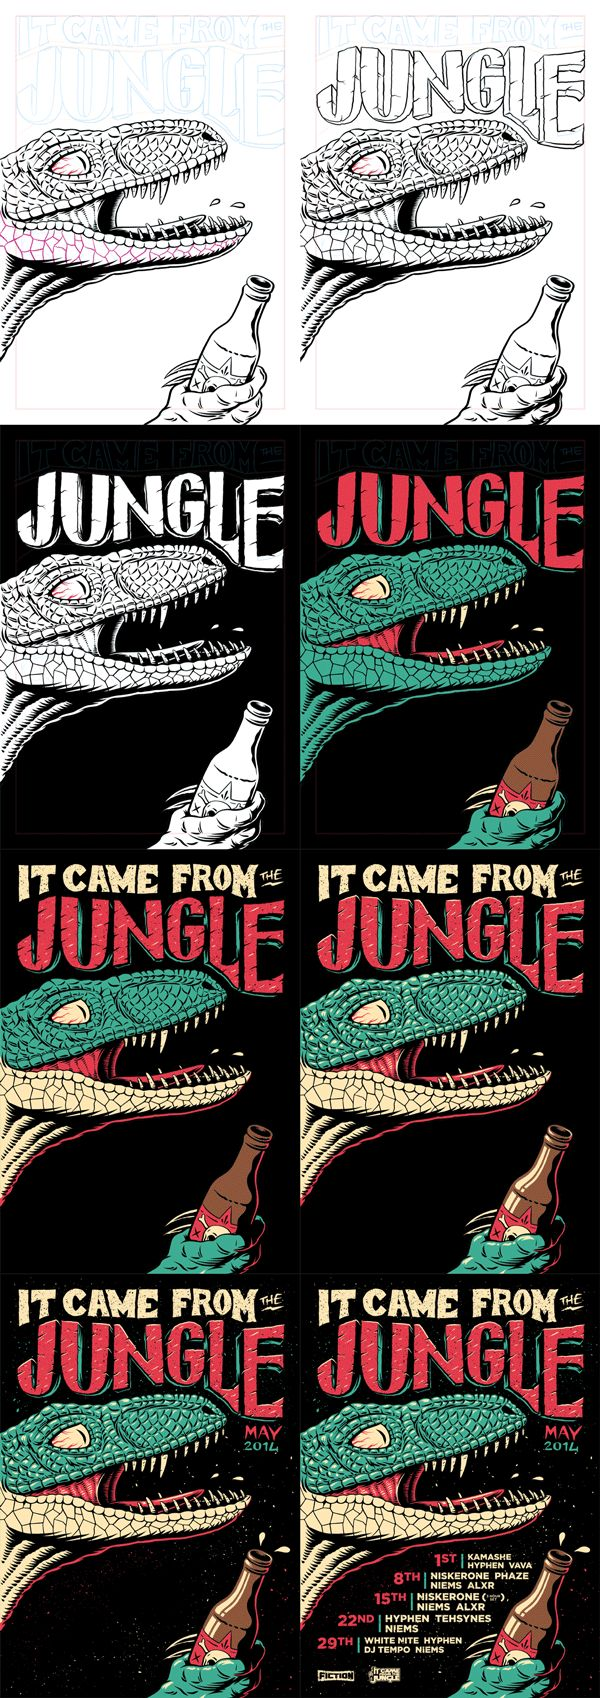 It Came From The Jungle - May by Ian Jepson, via Behance